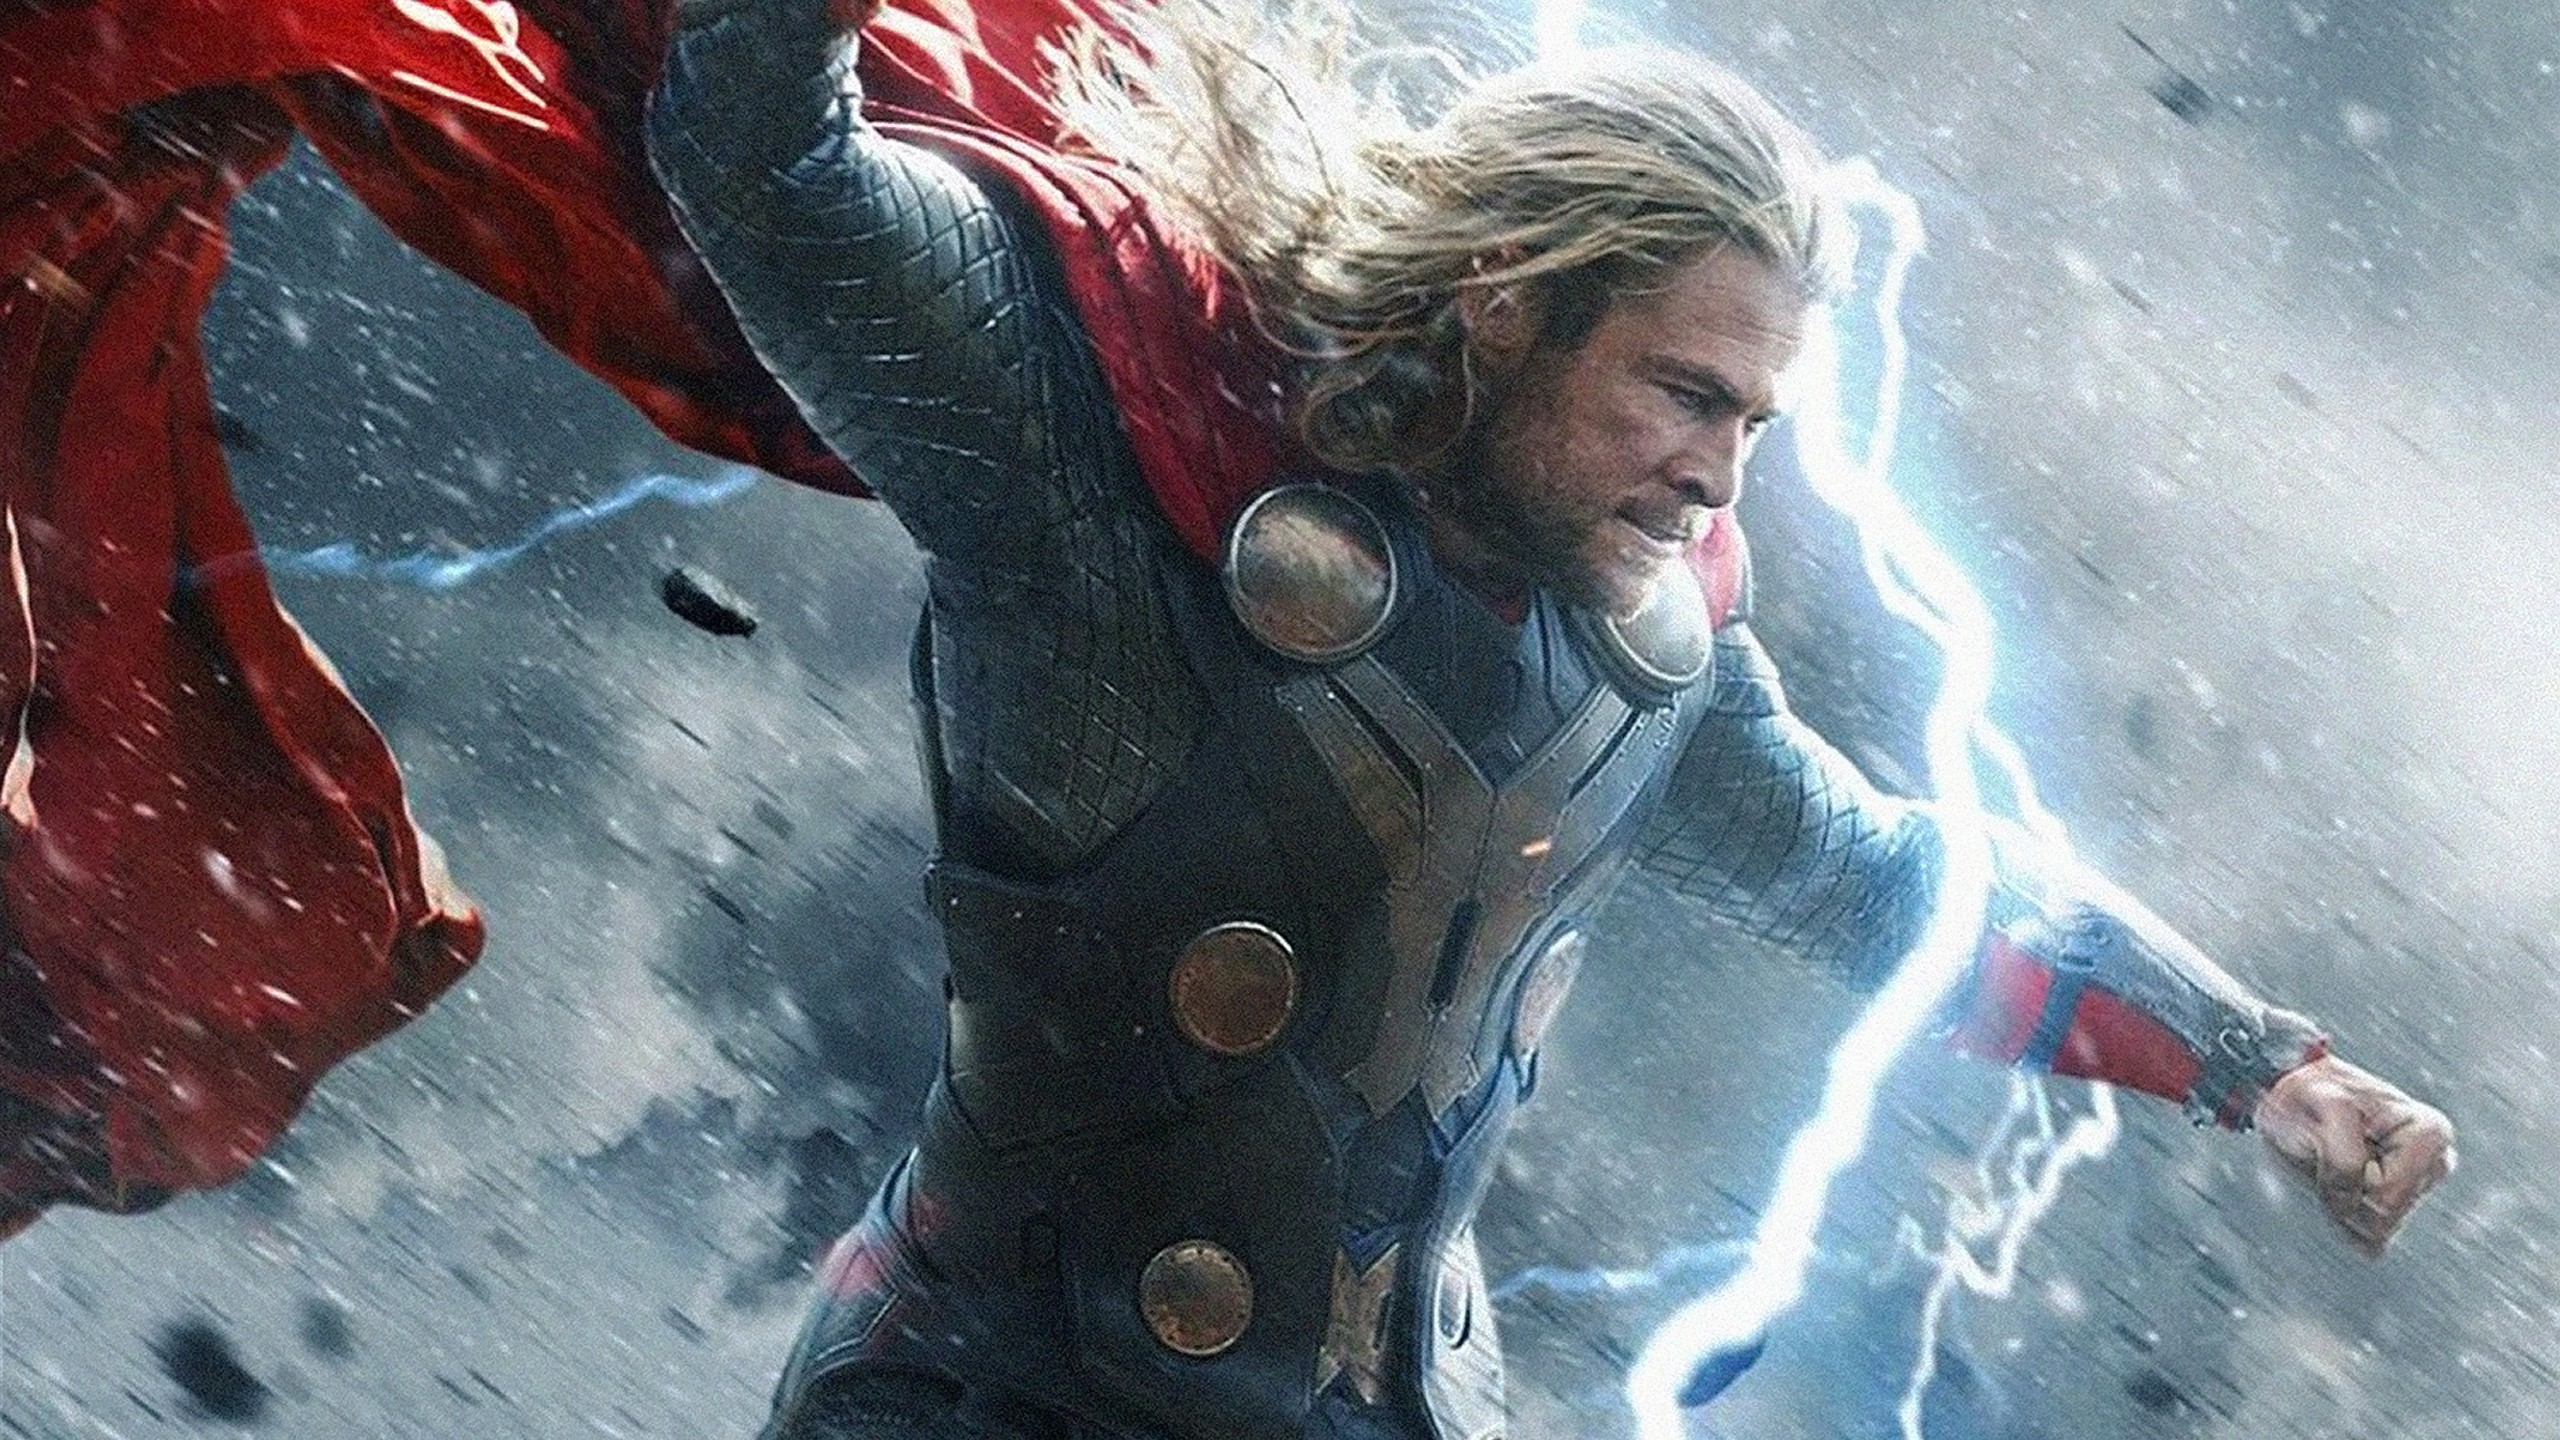 Creative Wallpapers For Iphone X Thor 2 The Dark World Movie Wallpapers Hd Wallpapers